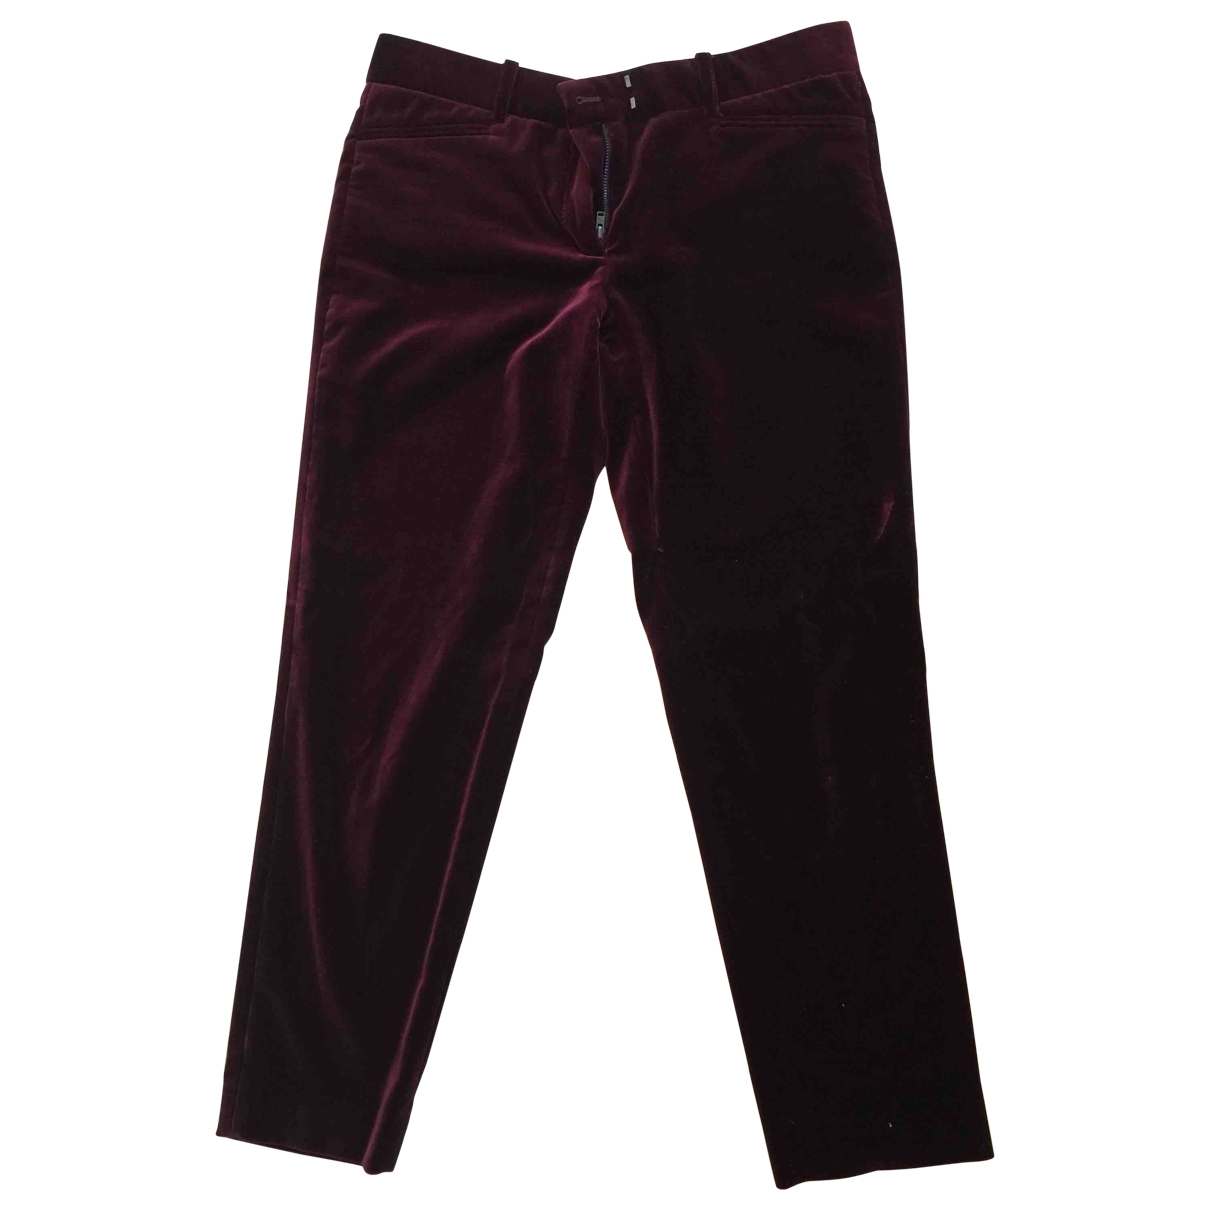 Pablo \N Burgundy Cotton Trousers for Women 38 FR